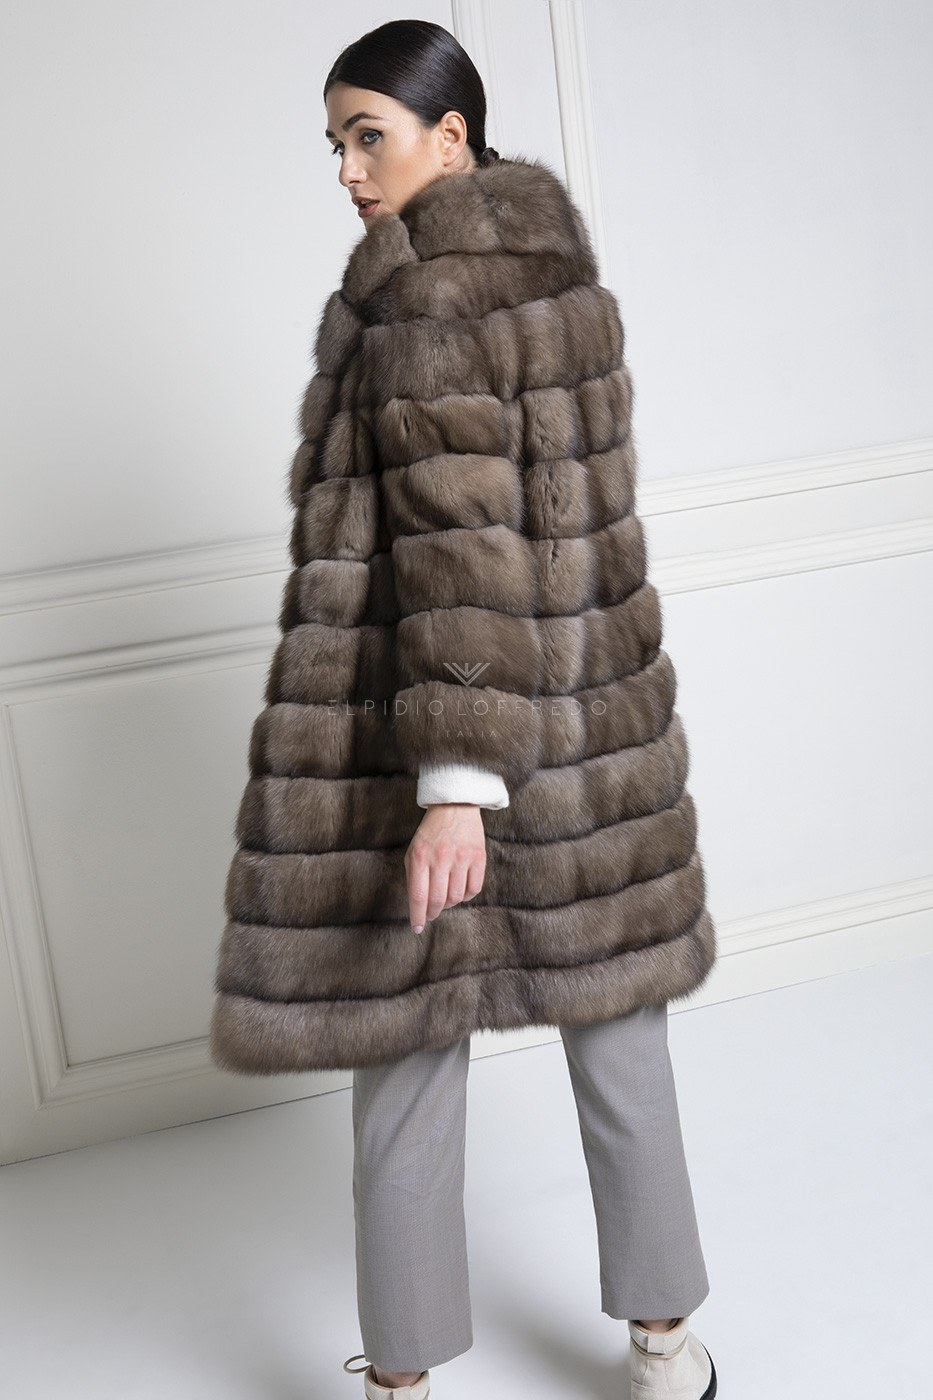 Barguzinsky Russian Sable Fur Coat - Titanio Color - Length 90 cm